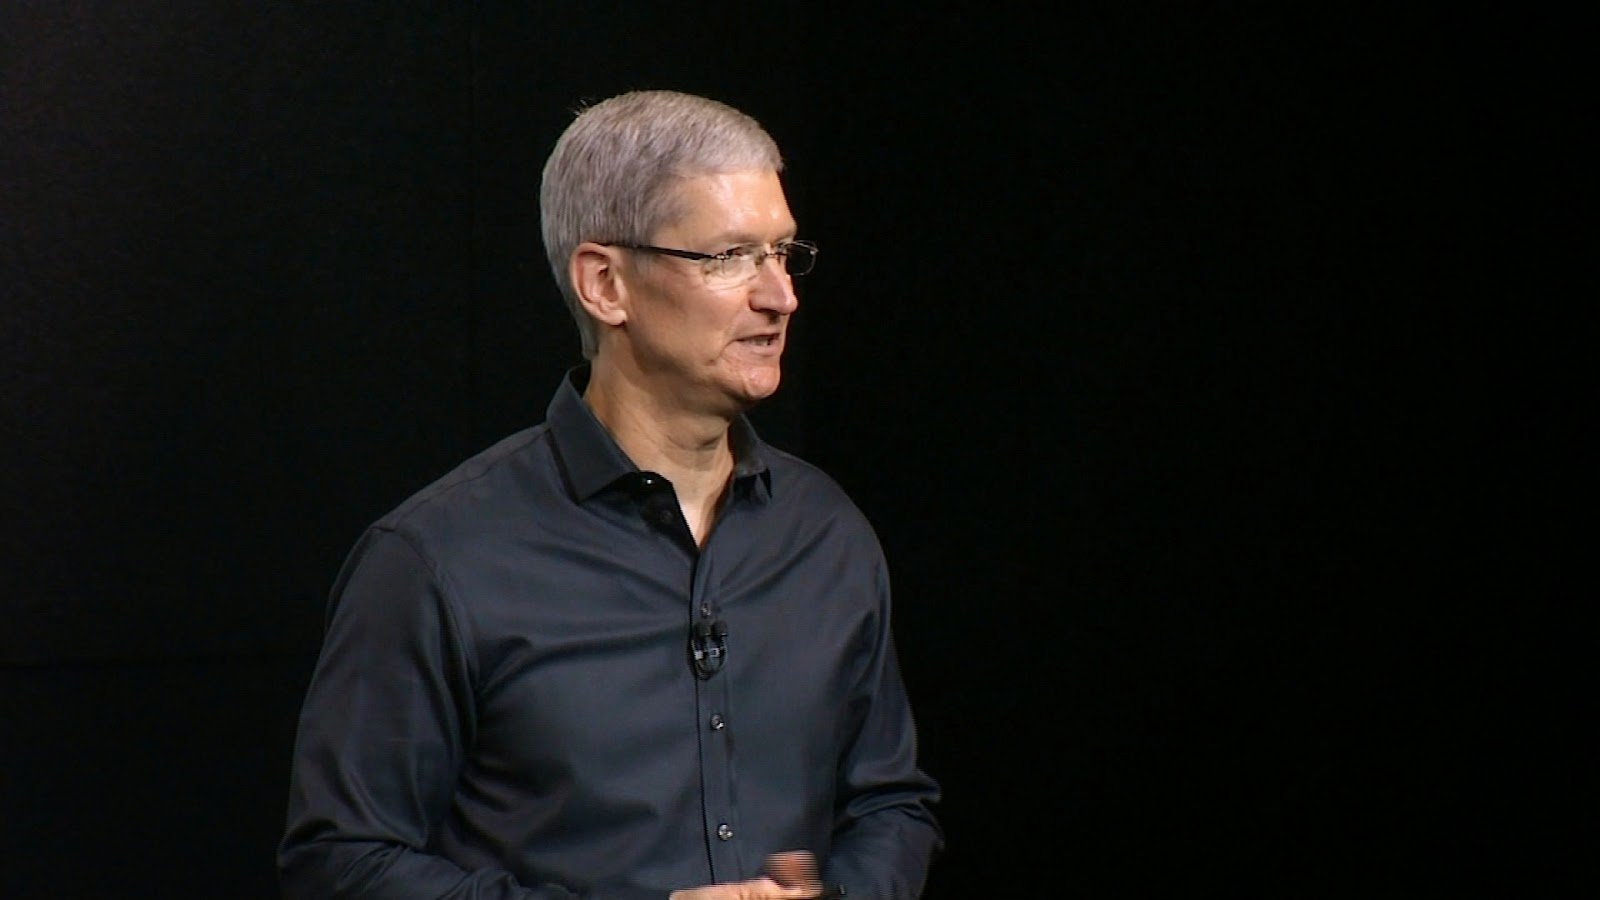 1600x900 - Tim Cook Wallpapers 33